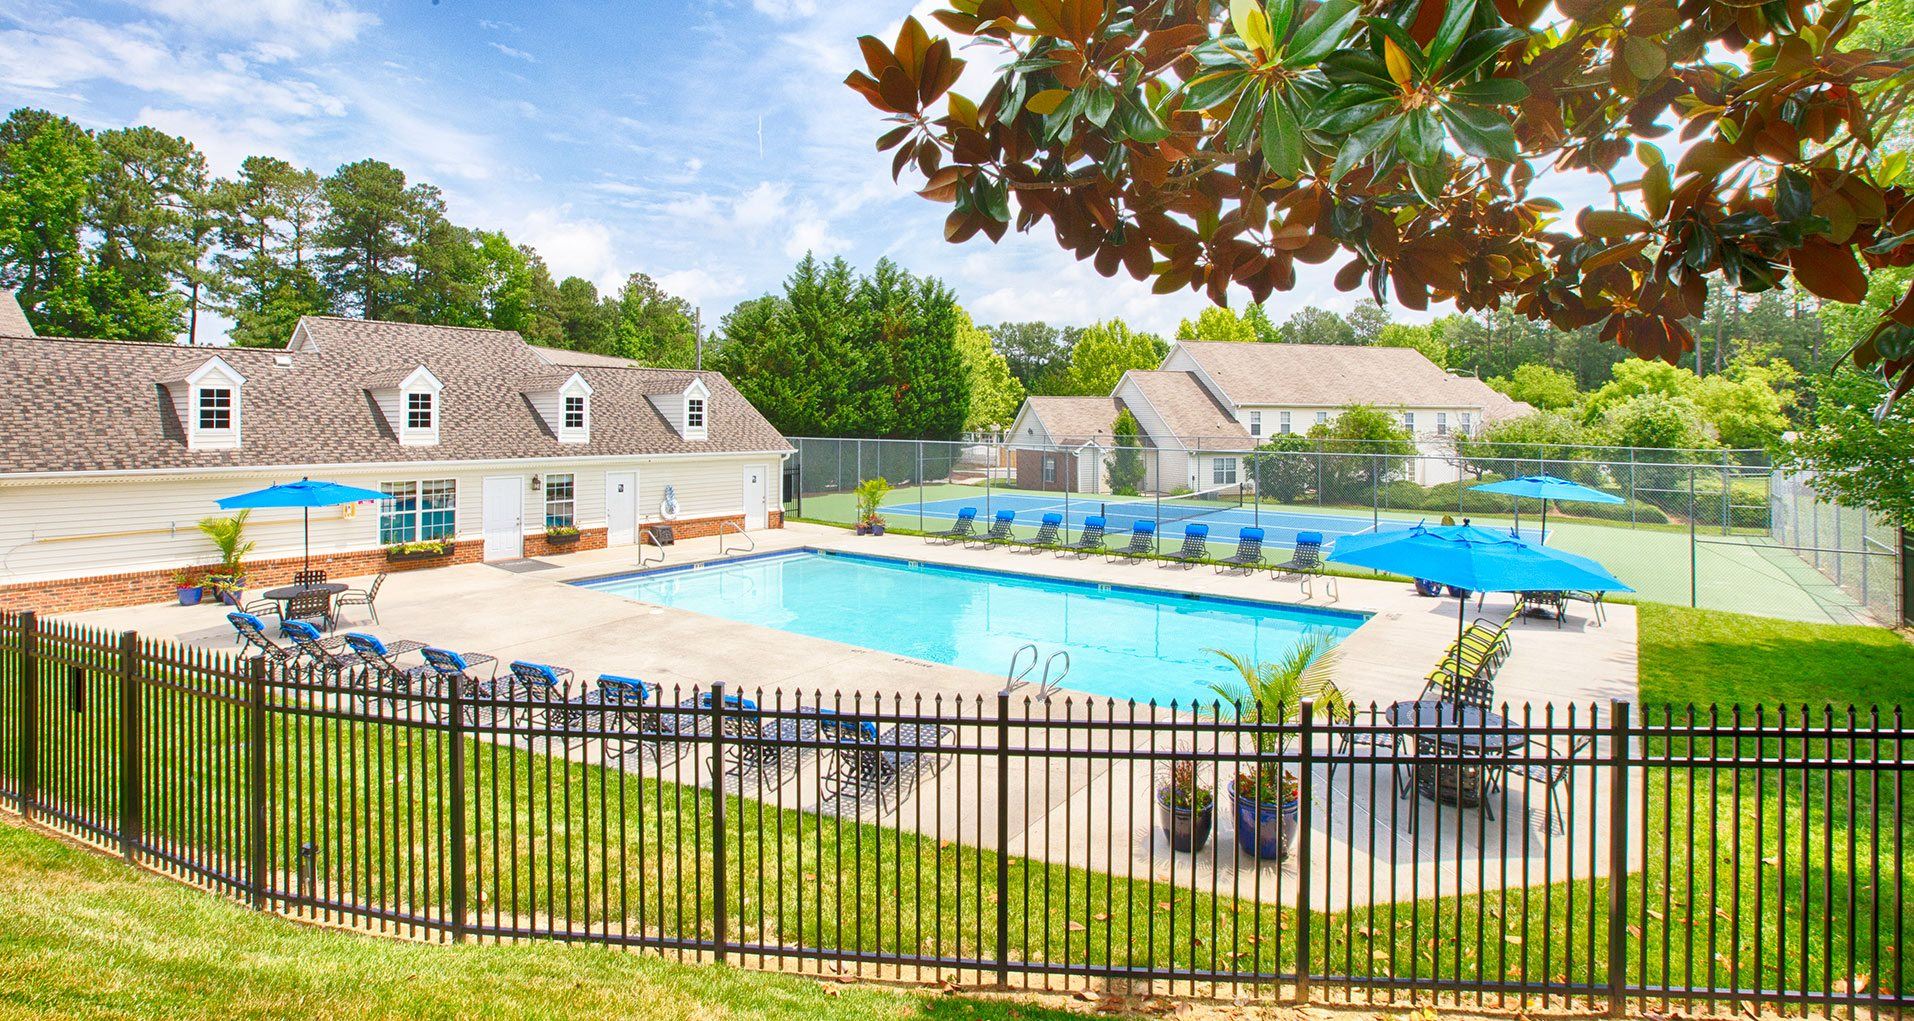 Fairgate Apartments Fence and Pool